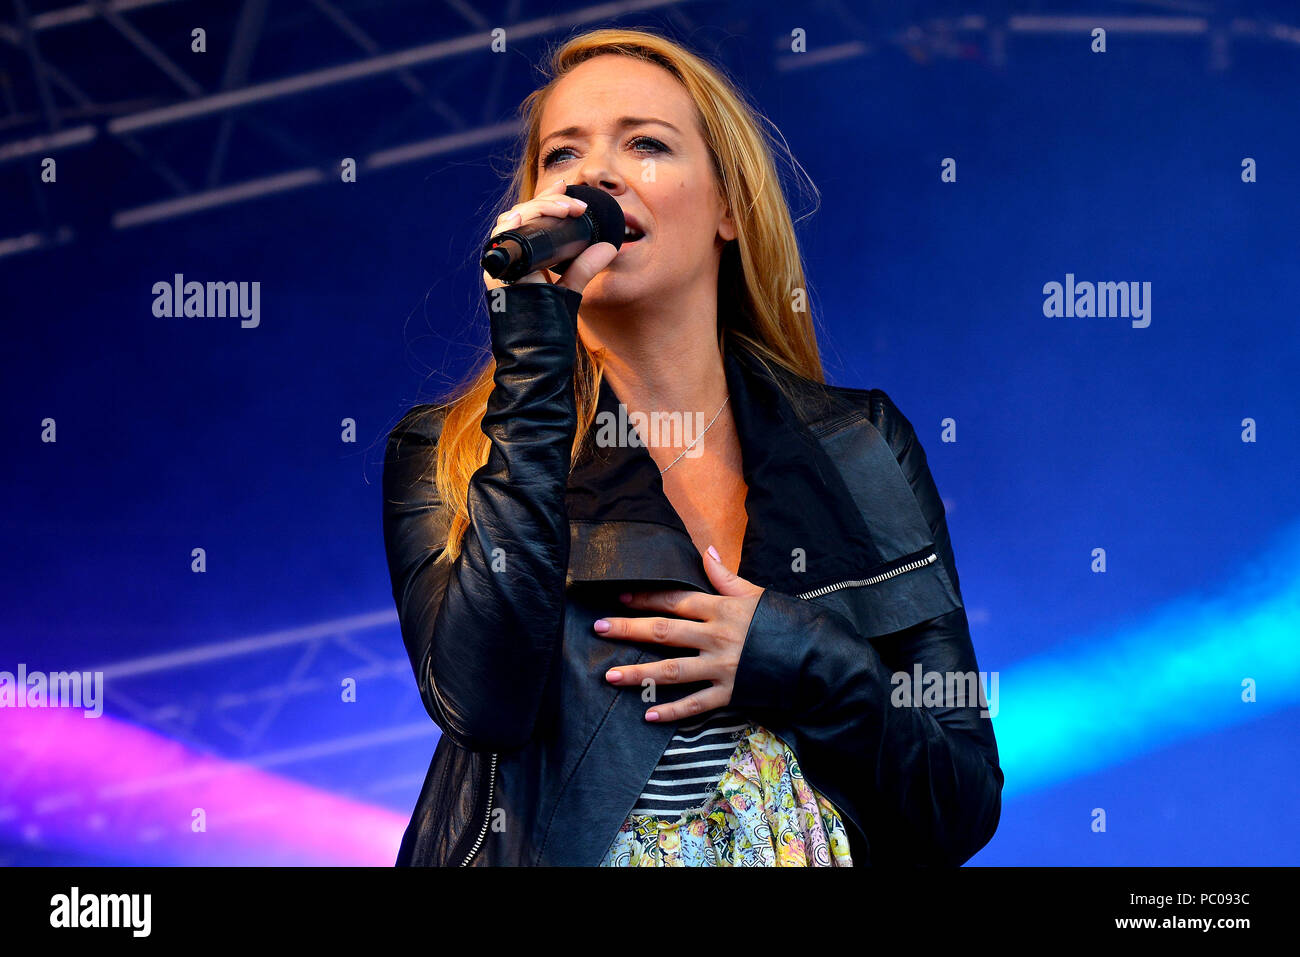 Atomic Kitten performing live on stag 2018 - Stock Image